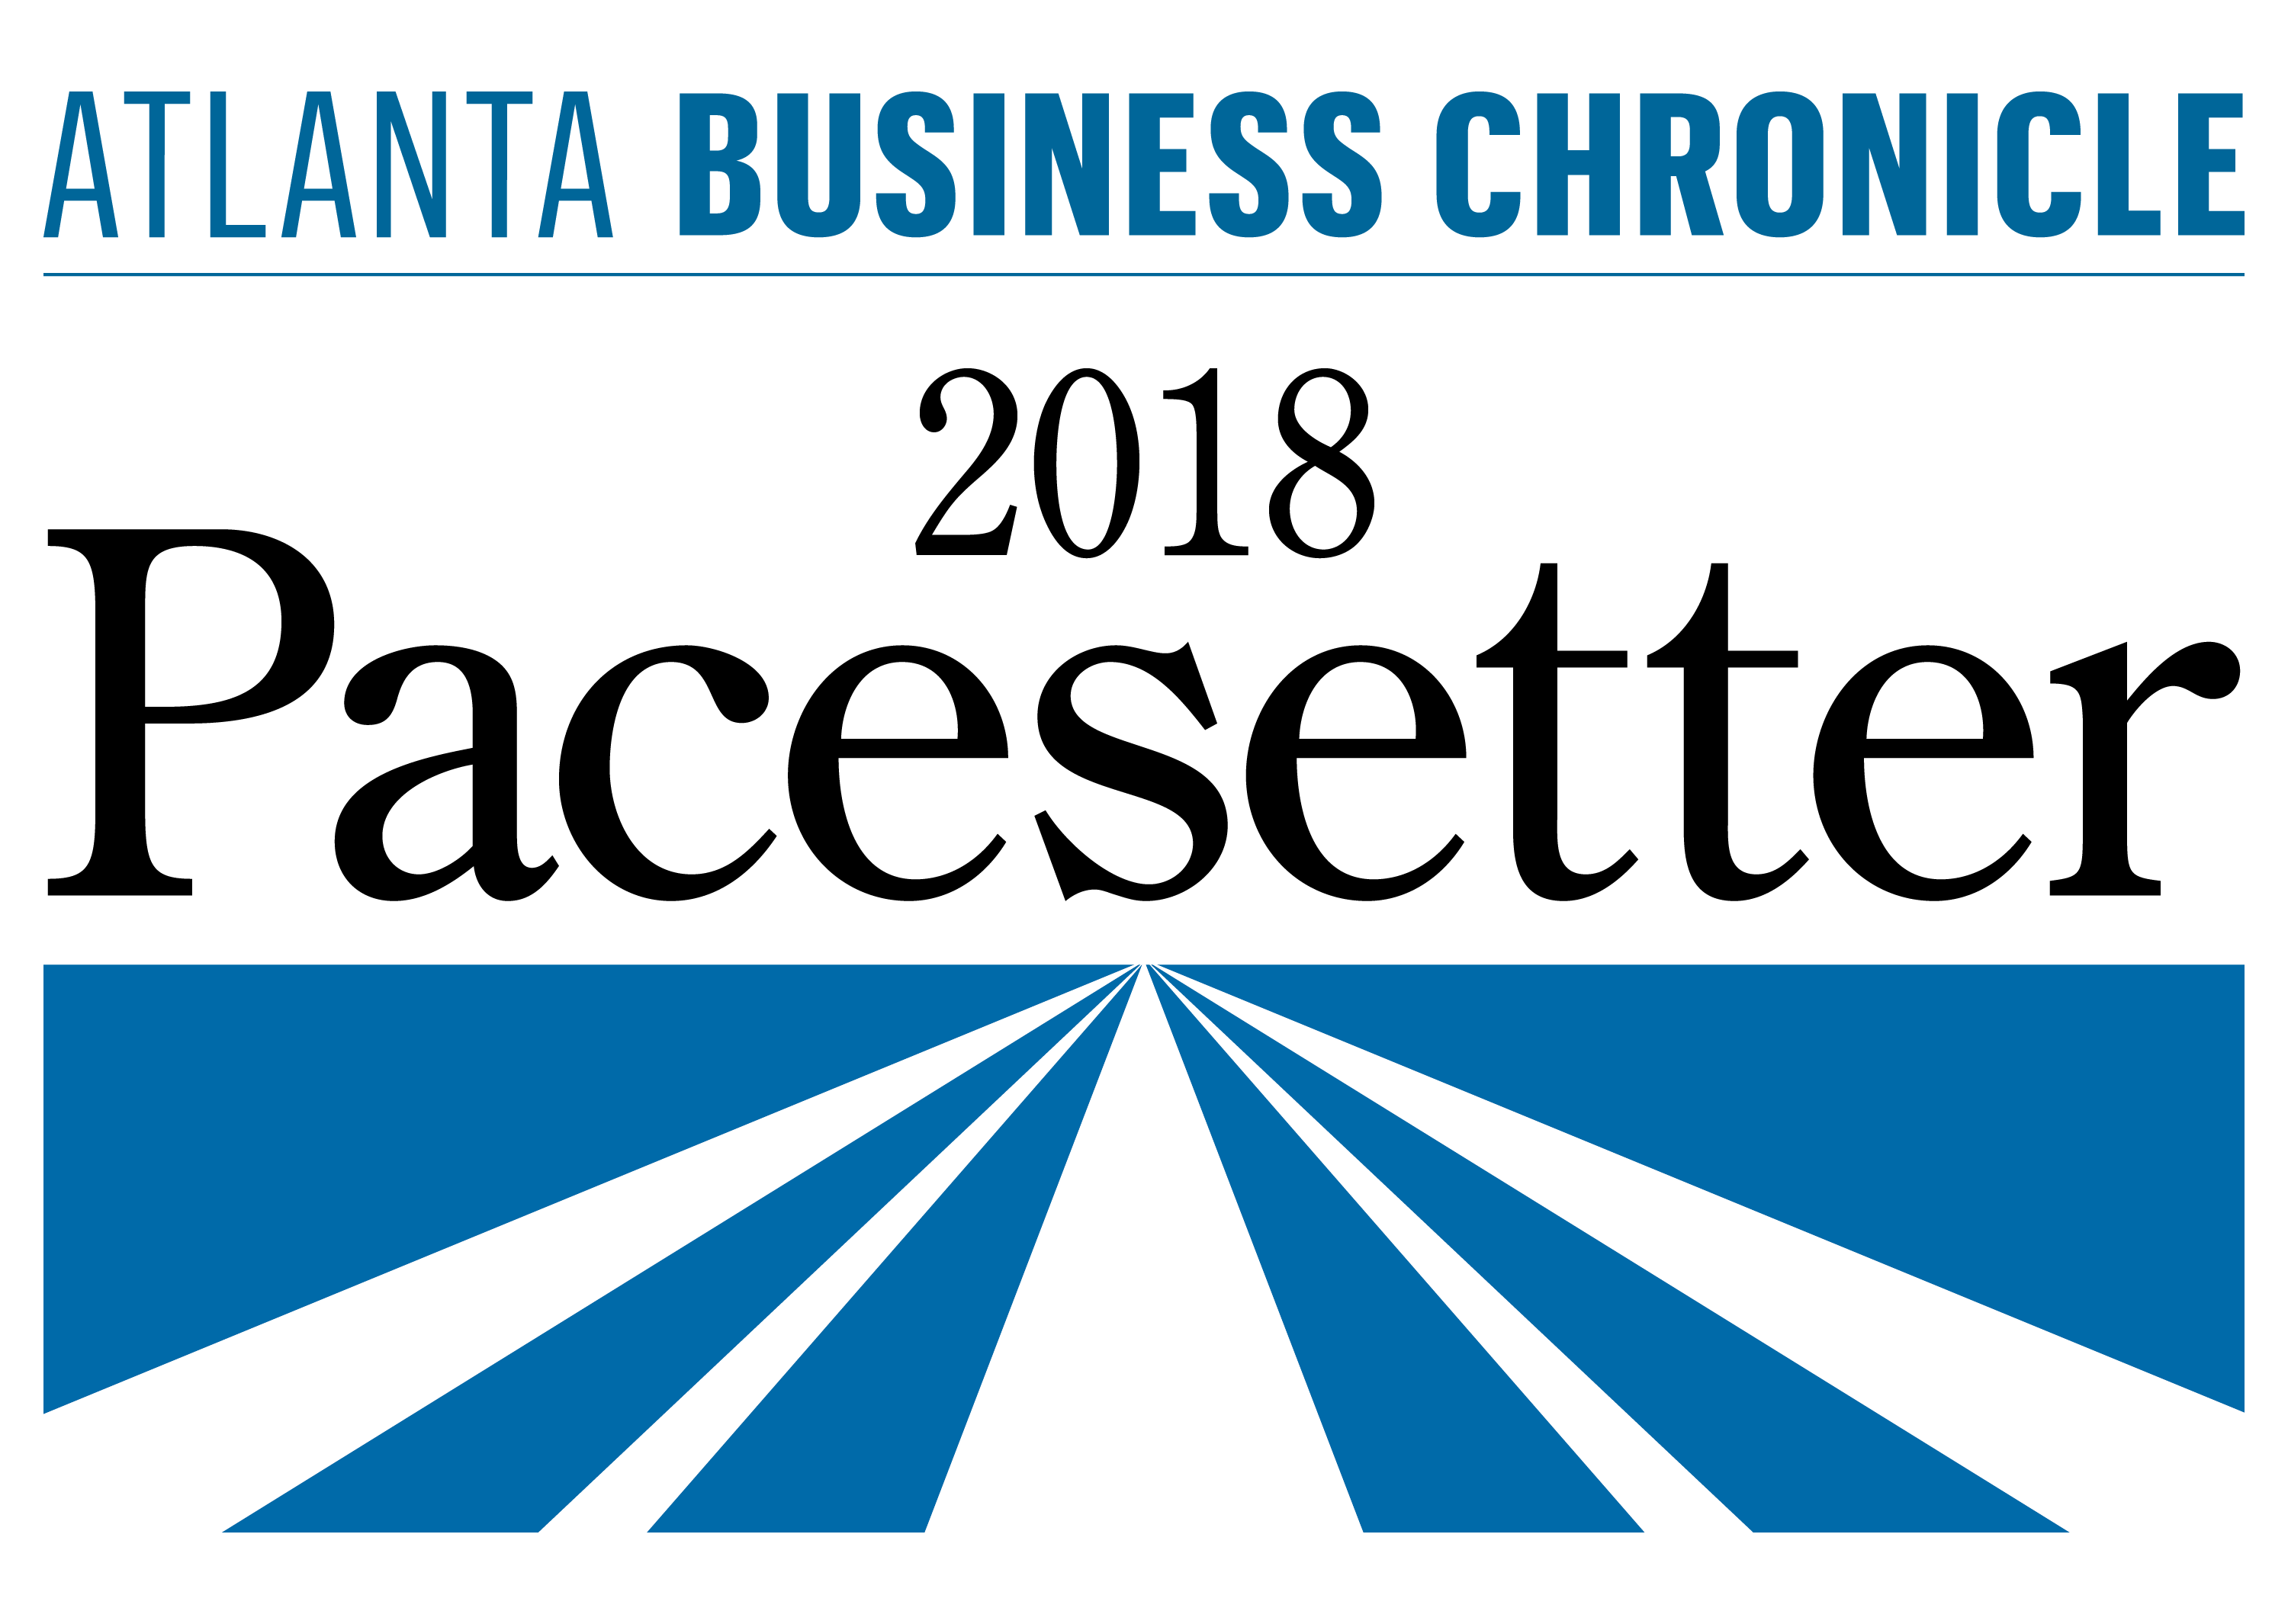 Atlanta Business Chronicle 2018 Pacetter